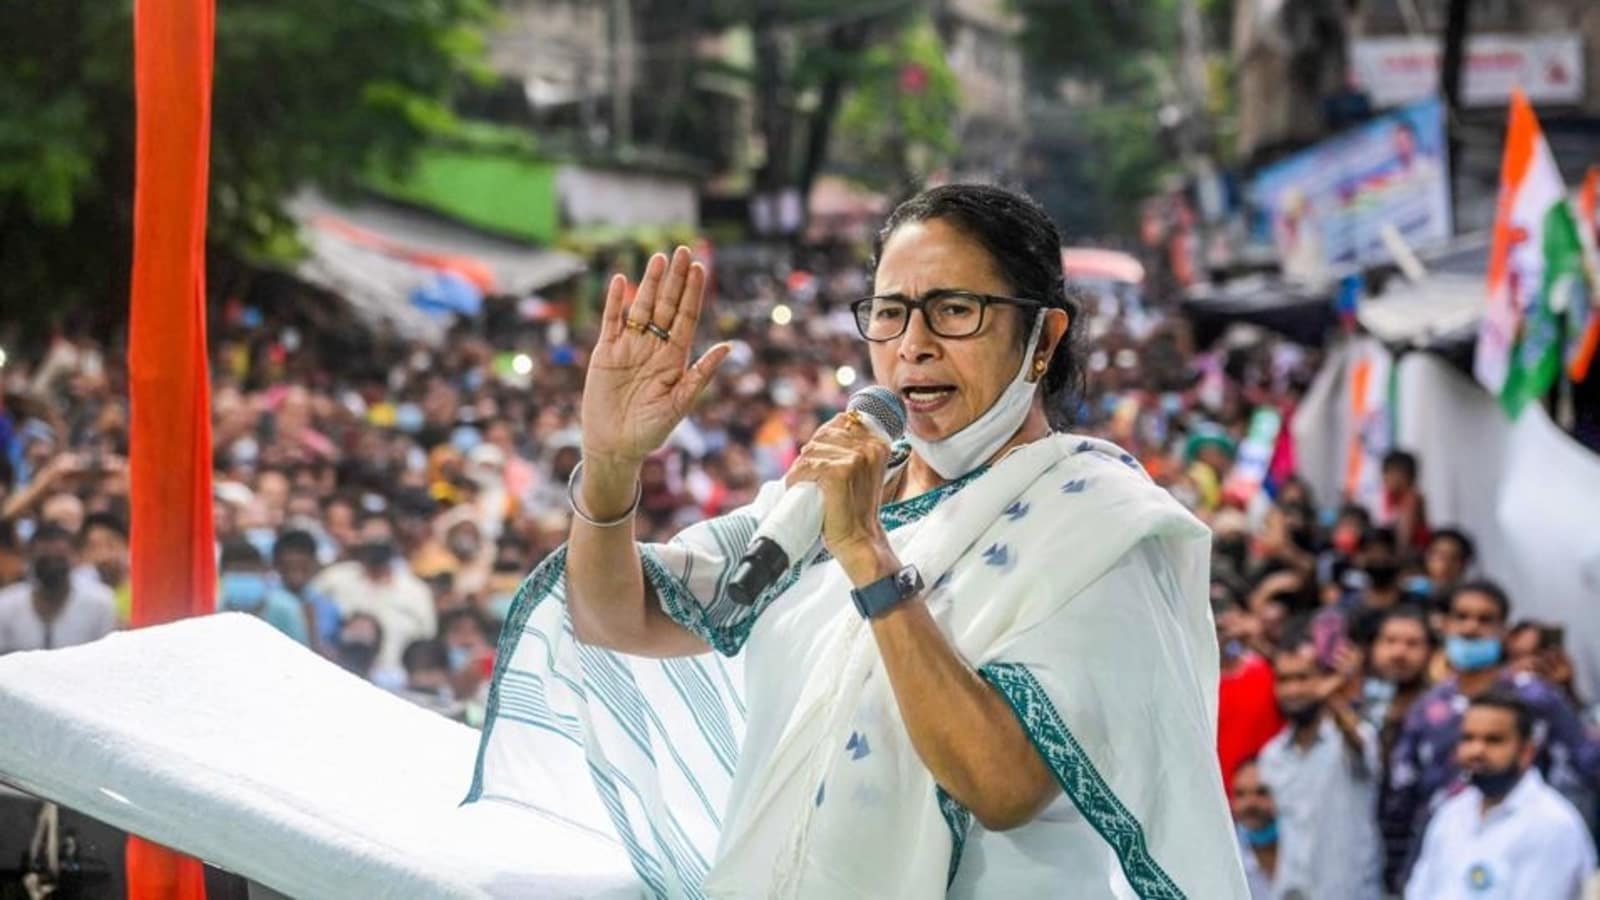 It's game on in Bhabanipur: Didi leads by more than 31,000 votes at 10th round